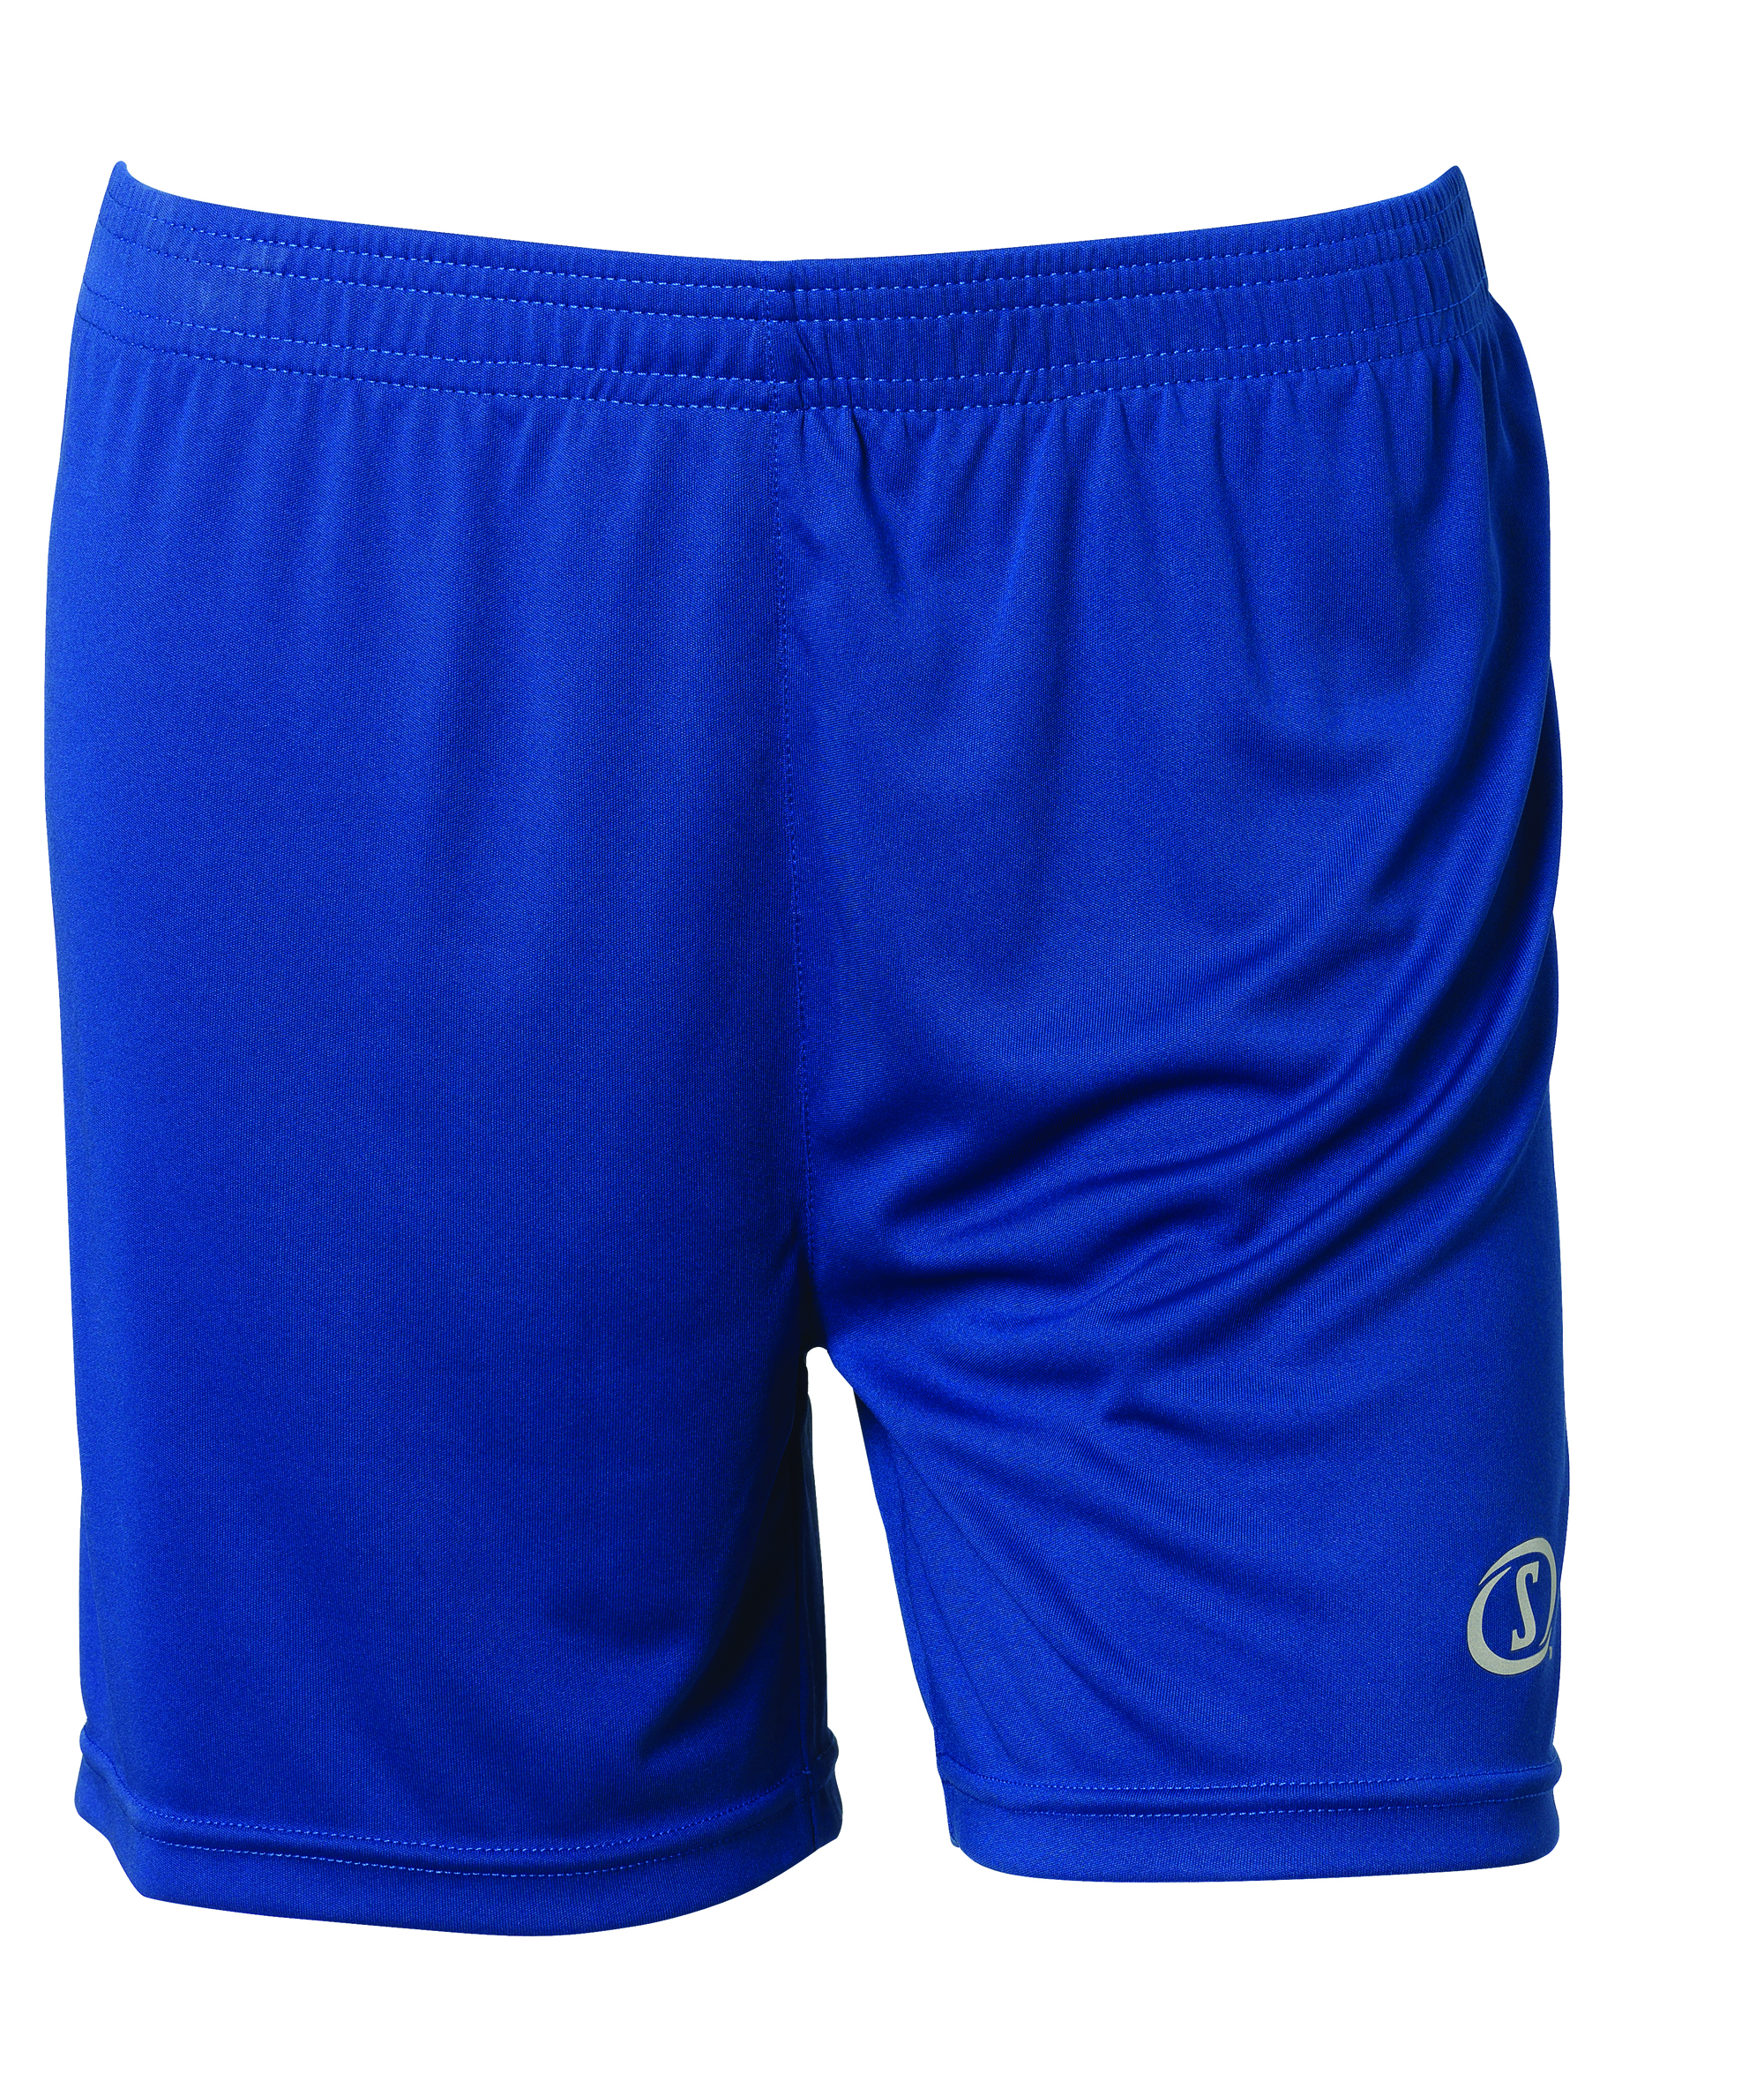 Kids Core Training Shorts - Royal - 128